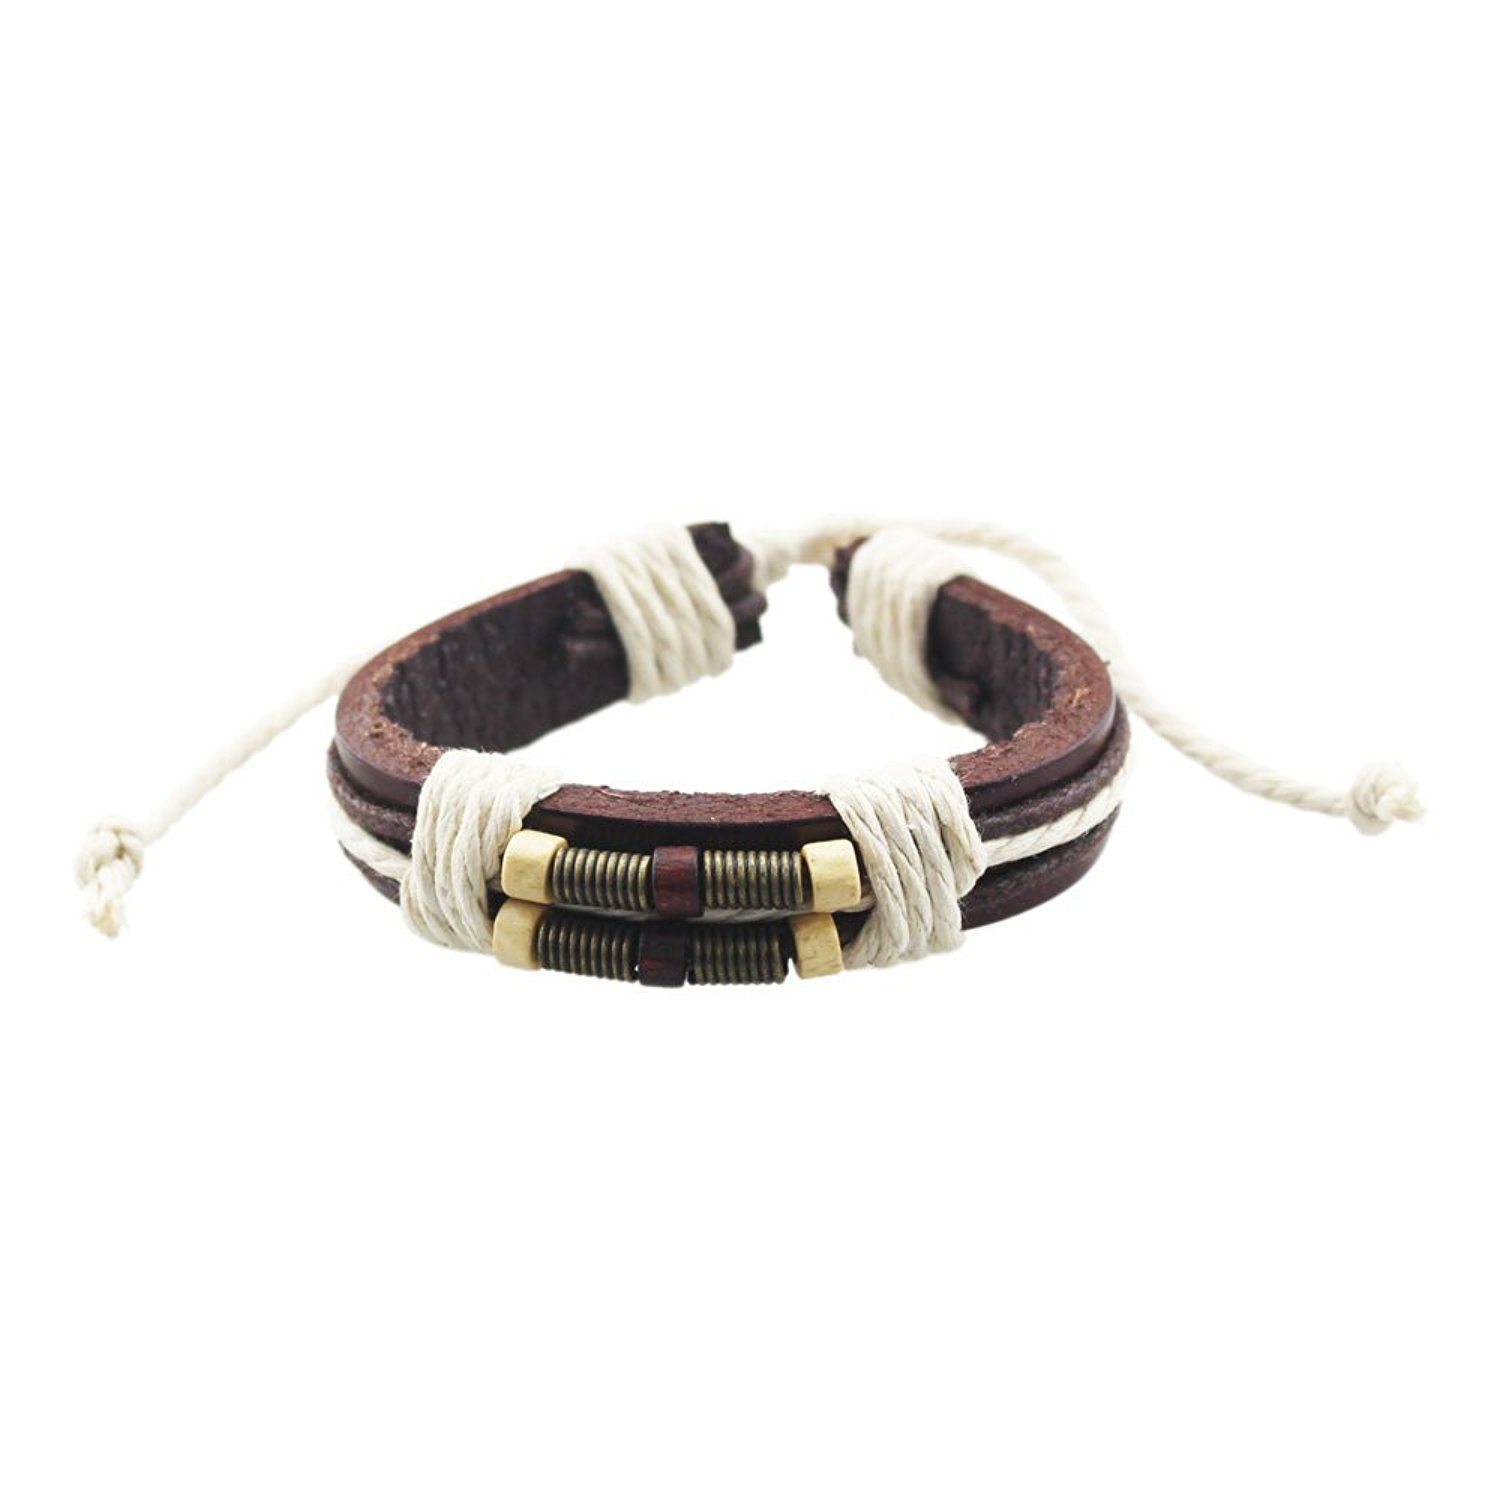 TEMEGO Jewelry Mens Leather Rope Bradied Bracelet Stainless Steel Clasp,8.26 Inch,Black Silver